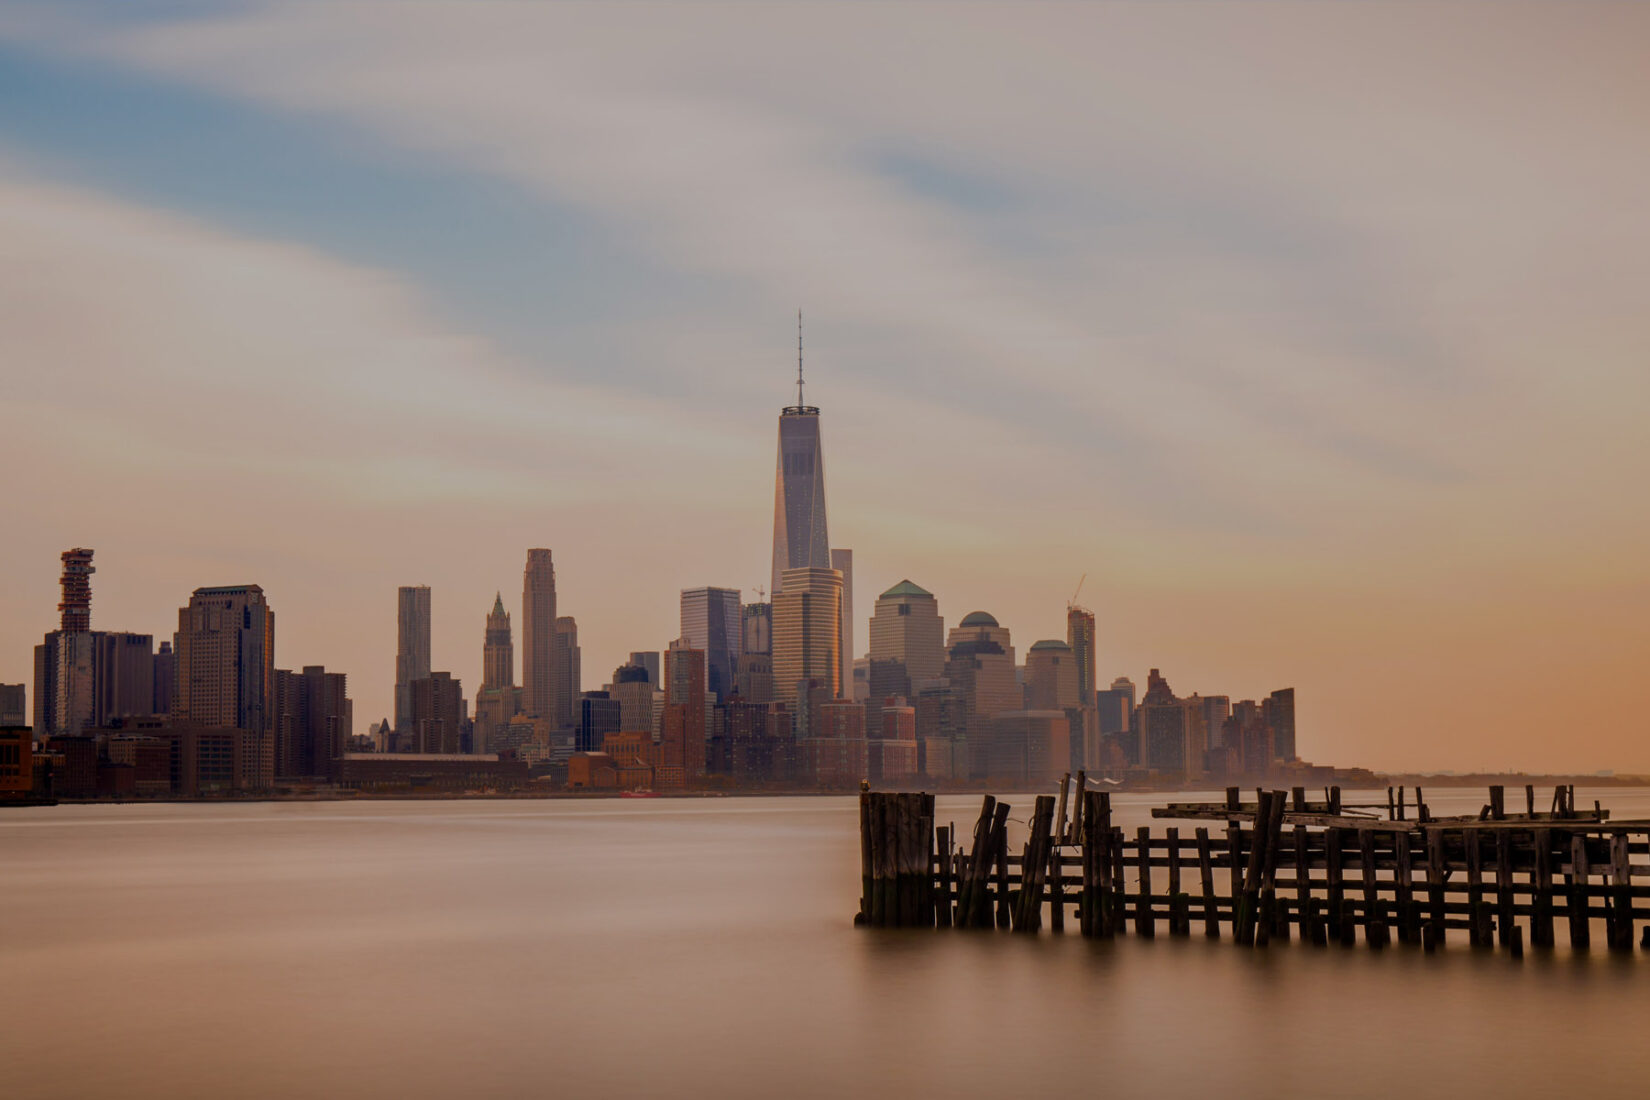 Partial View of the New York City Skyline from the Water